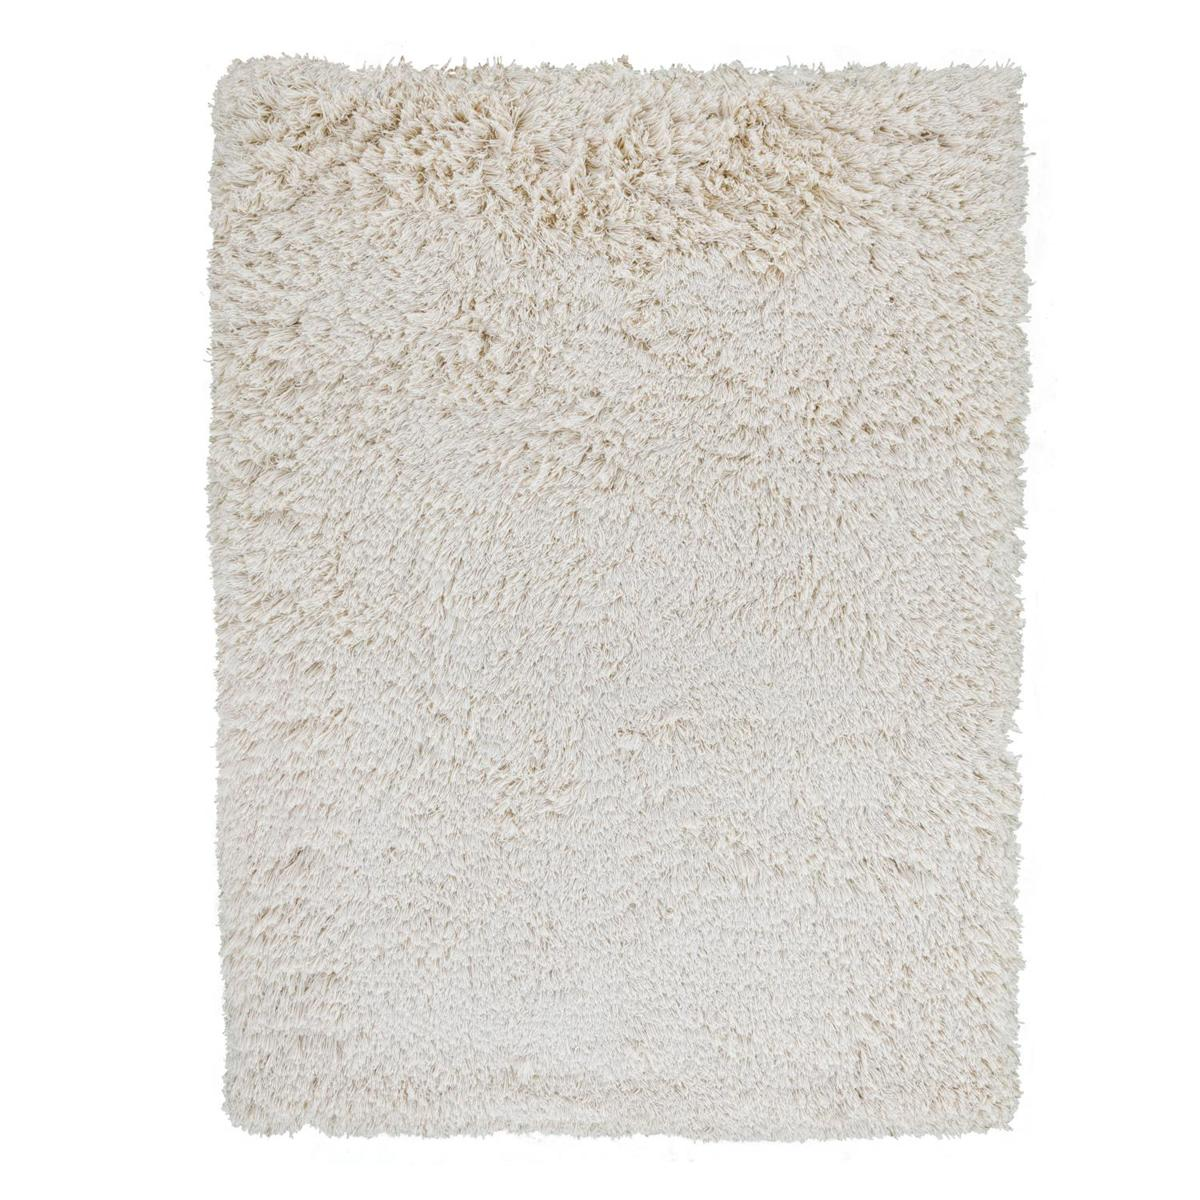 Highlander Shaggy Rug Natural 70x140cm 1